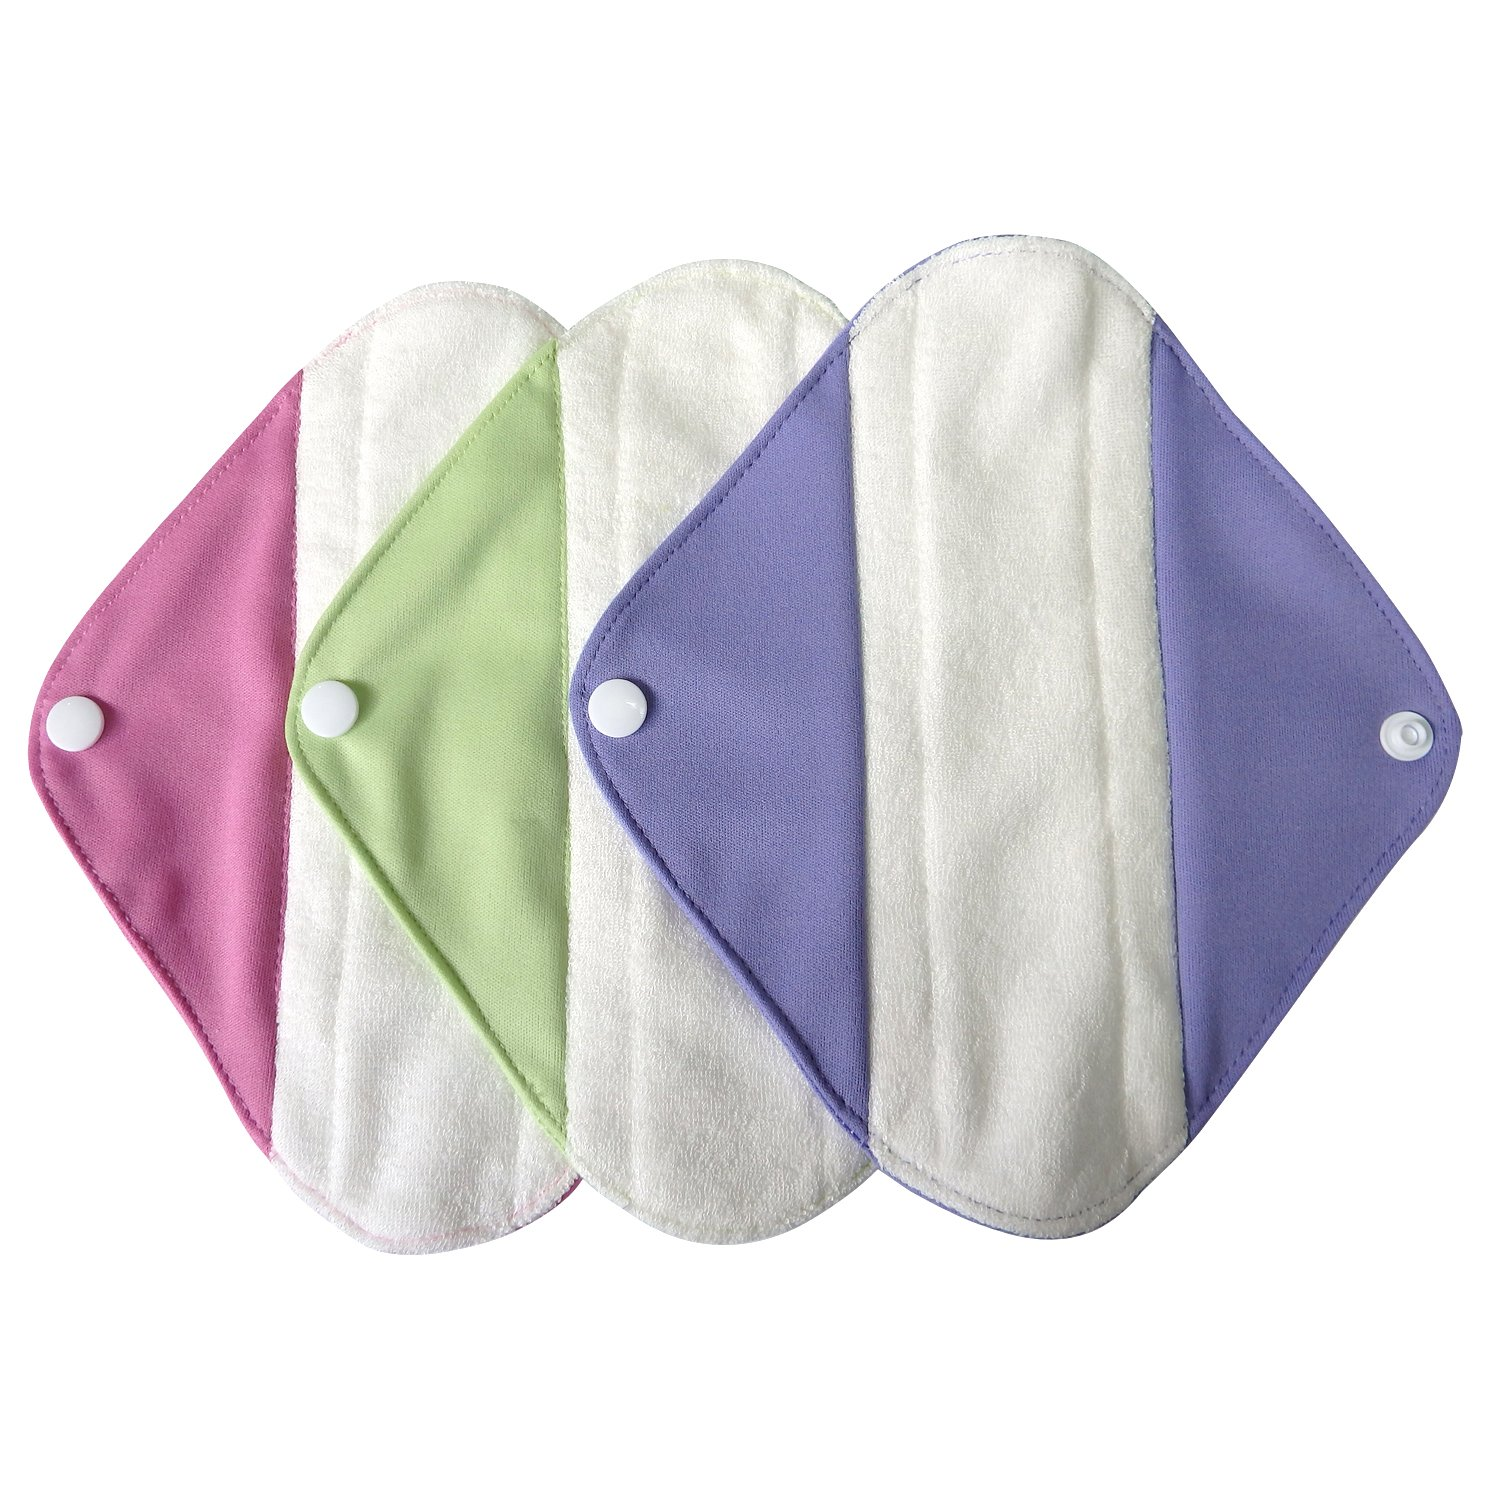 LBB Reusable Washable Menstrual Pads Small Size,3 pads pack